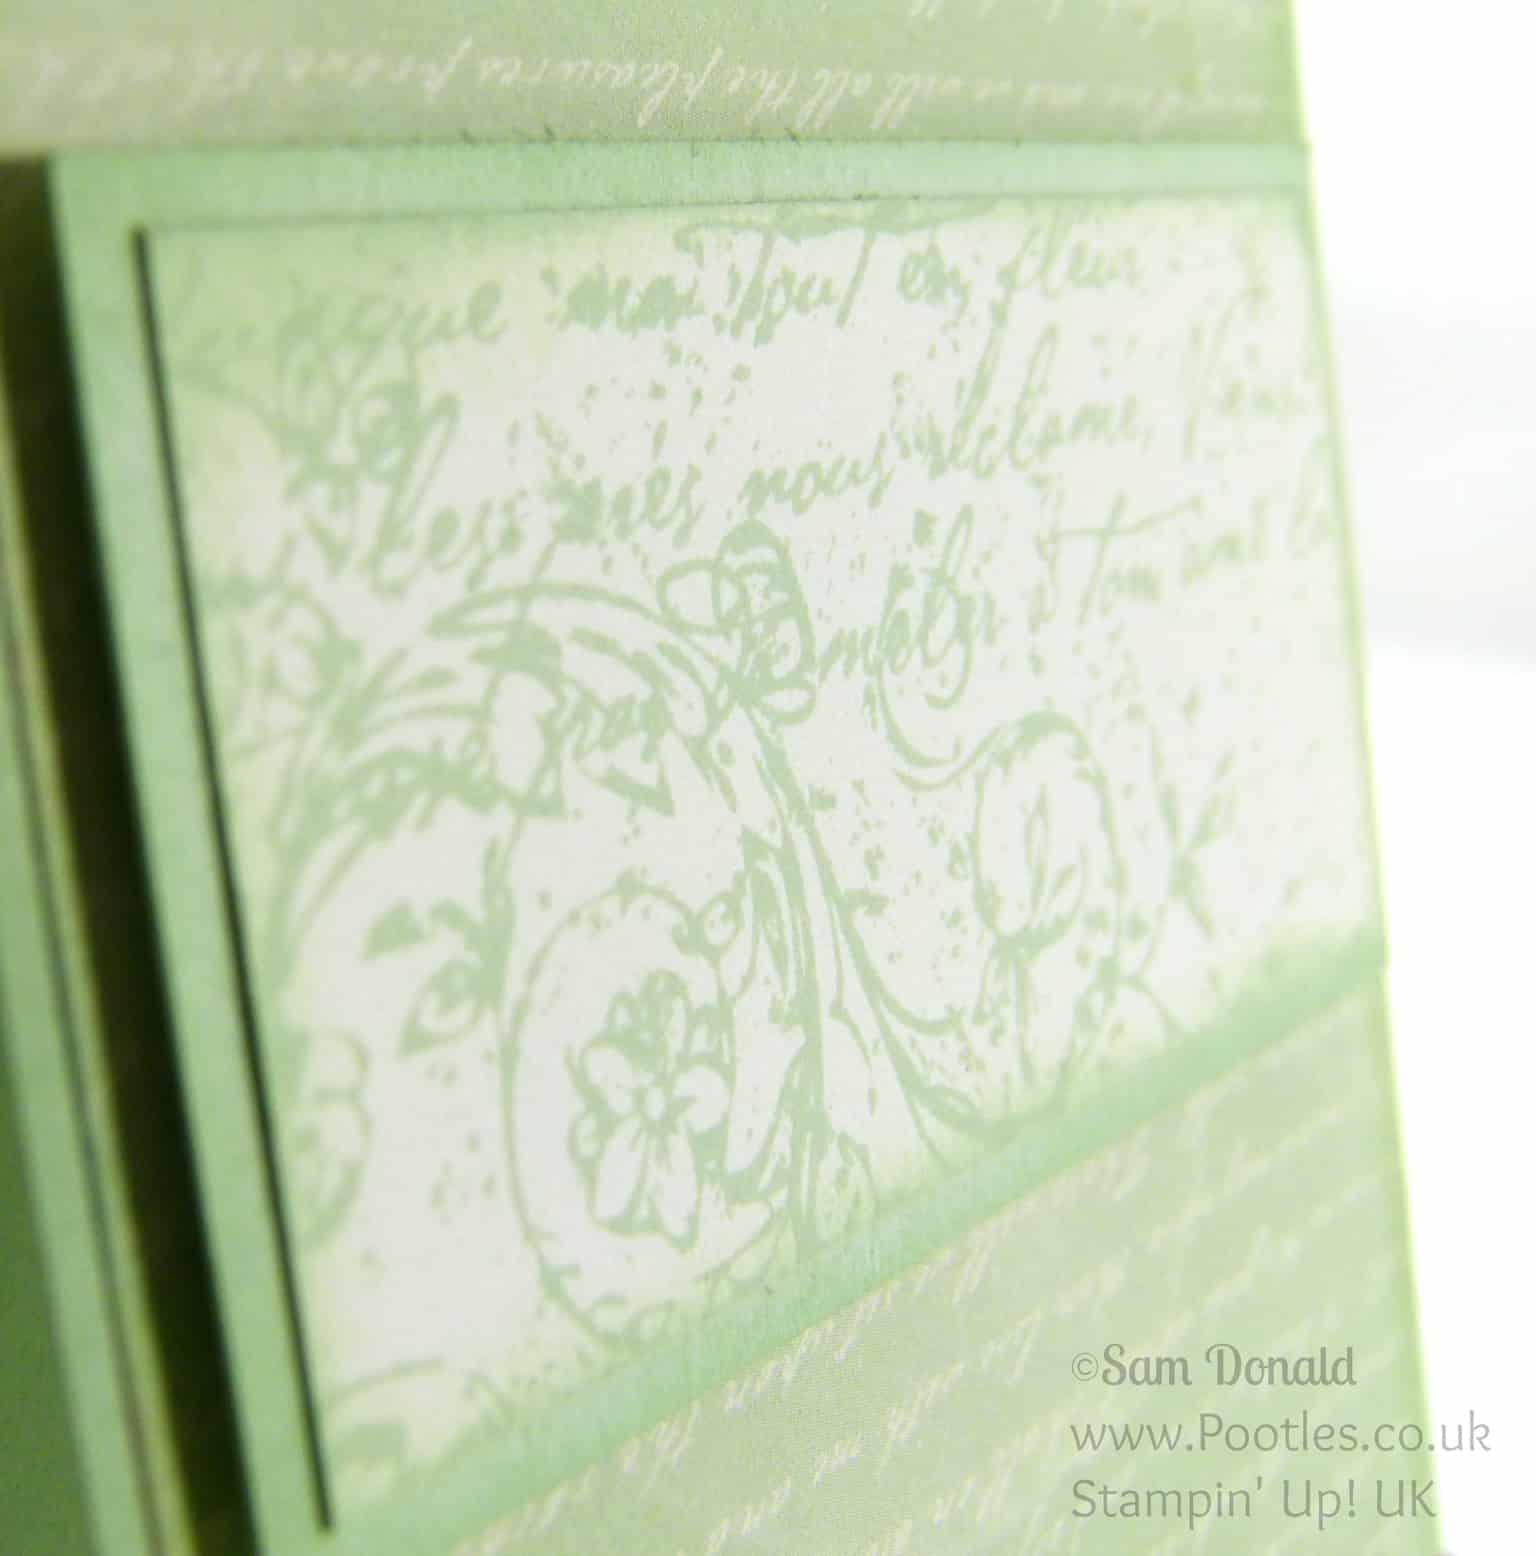 Stampin' Up! UK Independent Demonstrator Pootles. A Very Vintage Venetian Romance. Upside Down... Detail